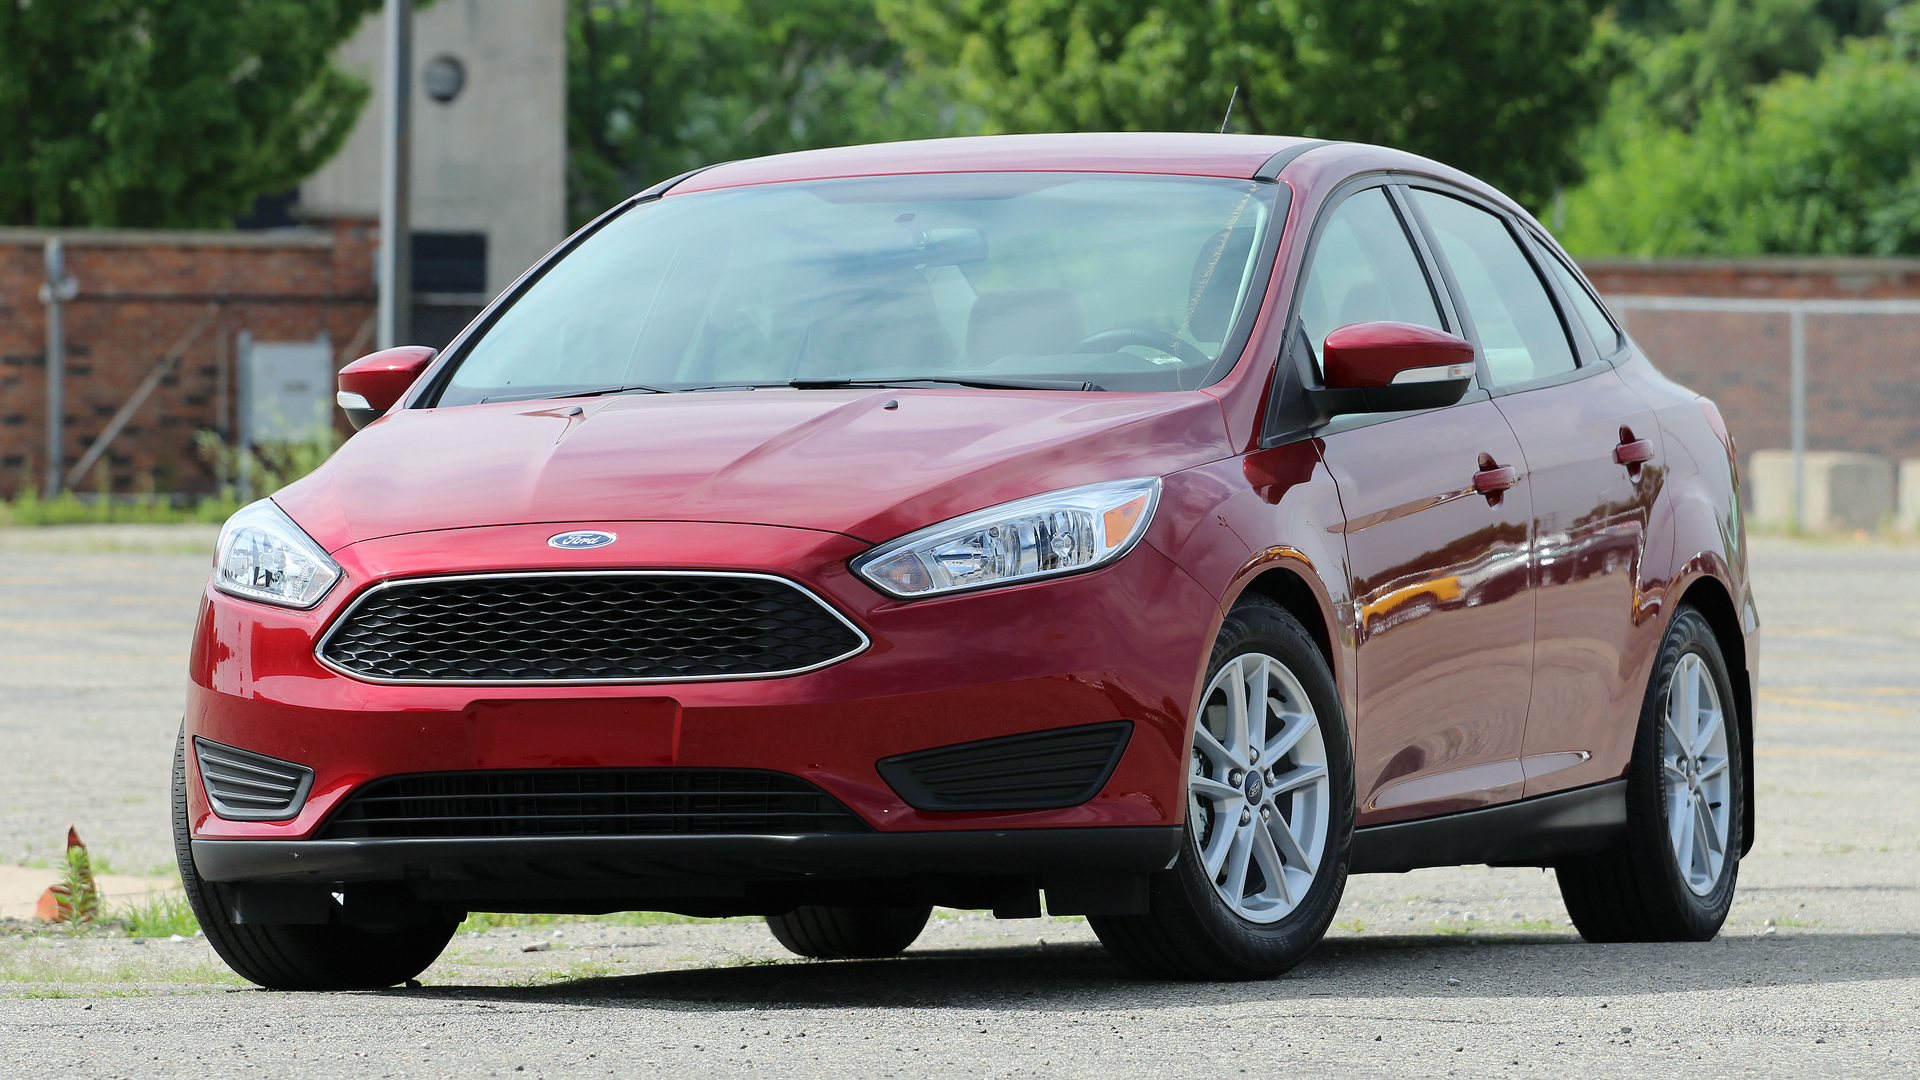 ford stops focus c max hybrid us production for two weeks amid weak demand. Black Bedroom Furniture Sets. Home Design Ideas